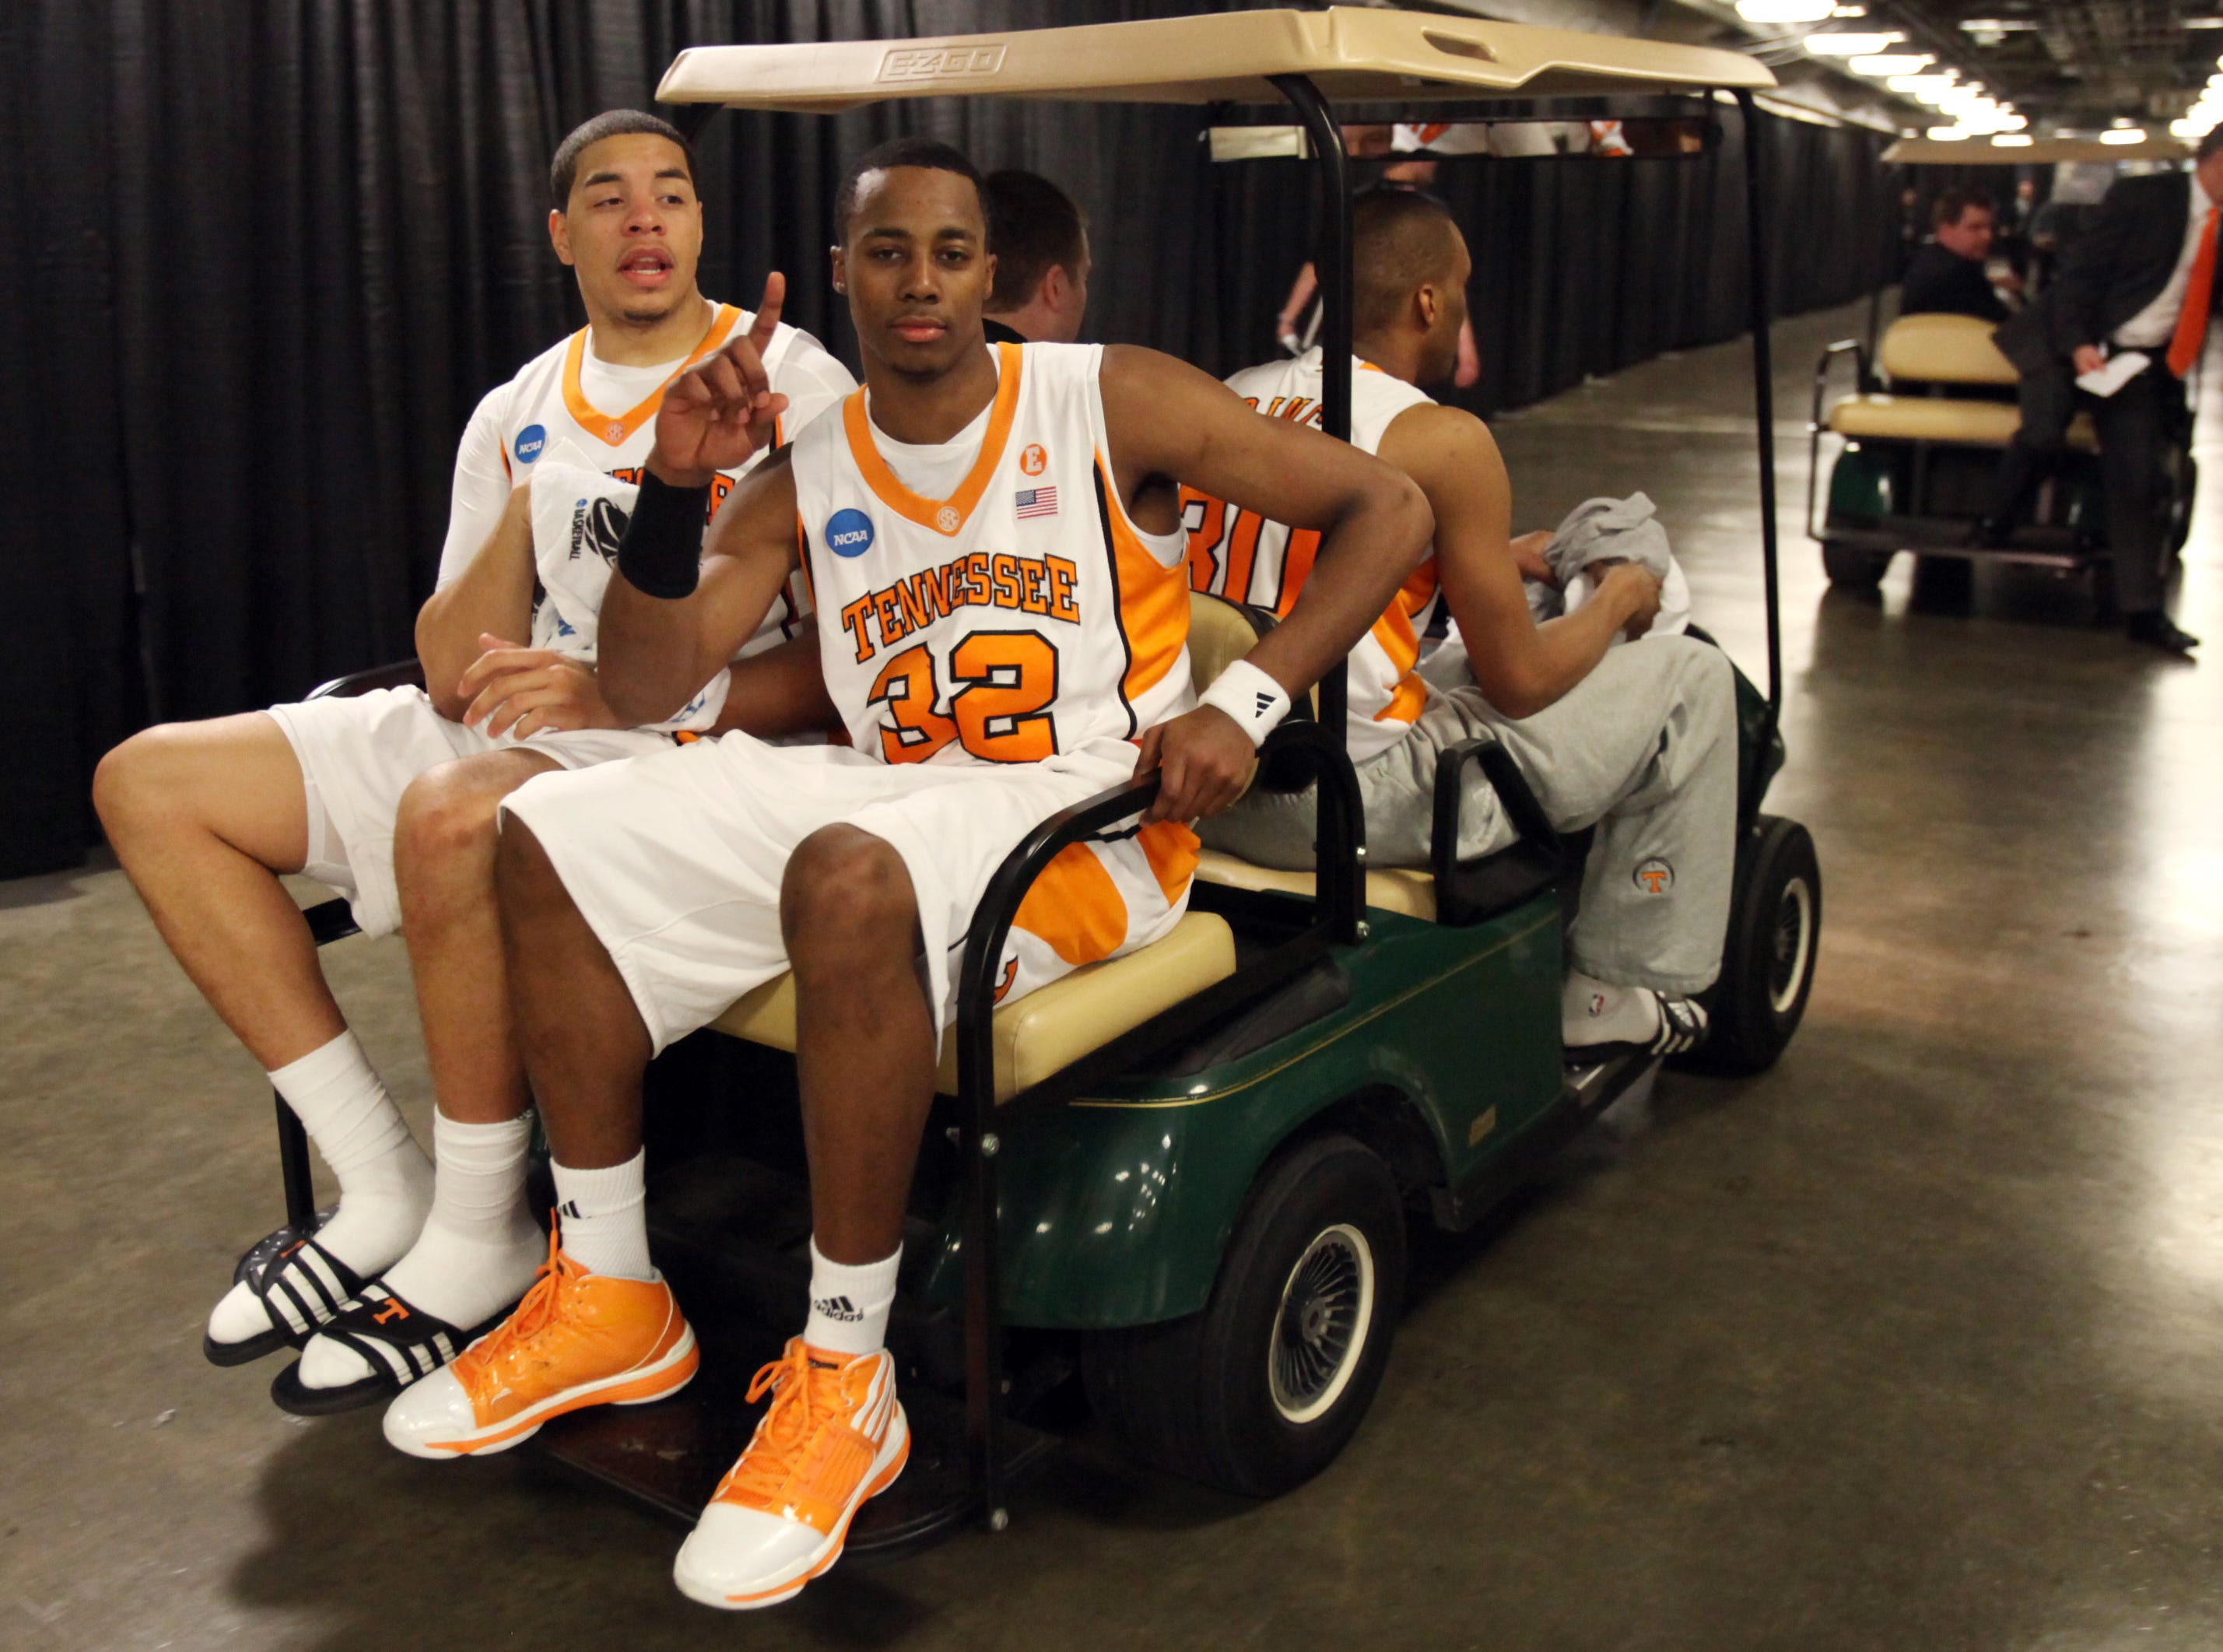 Scotty Hopson holds up one finger as he rides with teammate Brian Williams to a press conference after the Vols defeated the Ohio Bobcats 83-68 during the second round of the NCAA tournament in Providence, R.I. Saturday, Mar. 20, 2010.